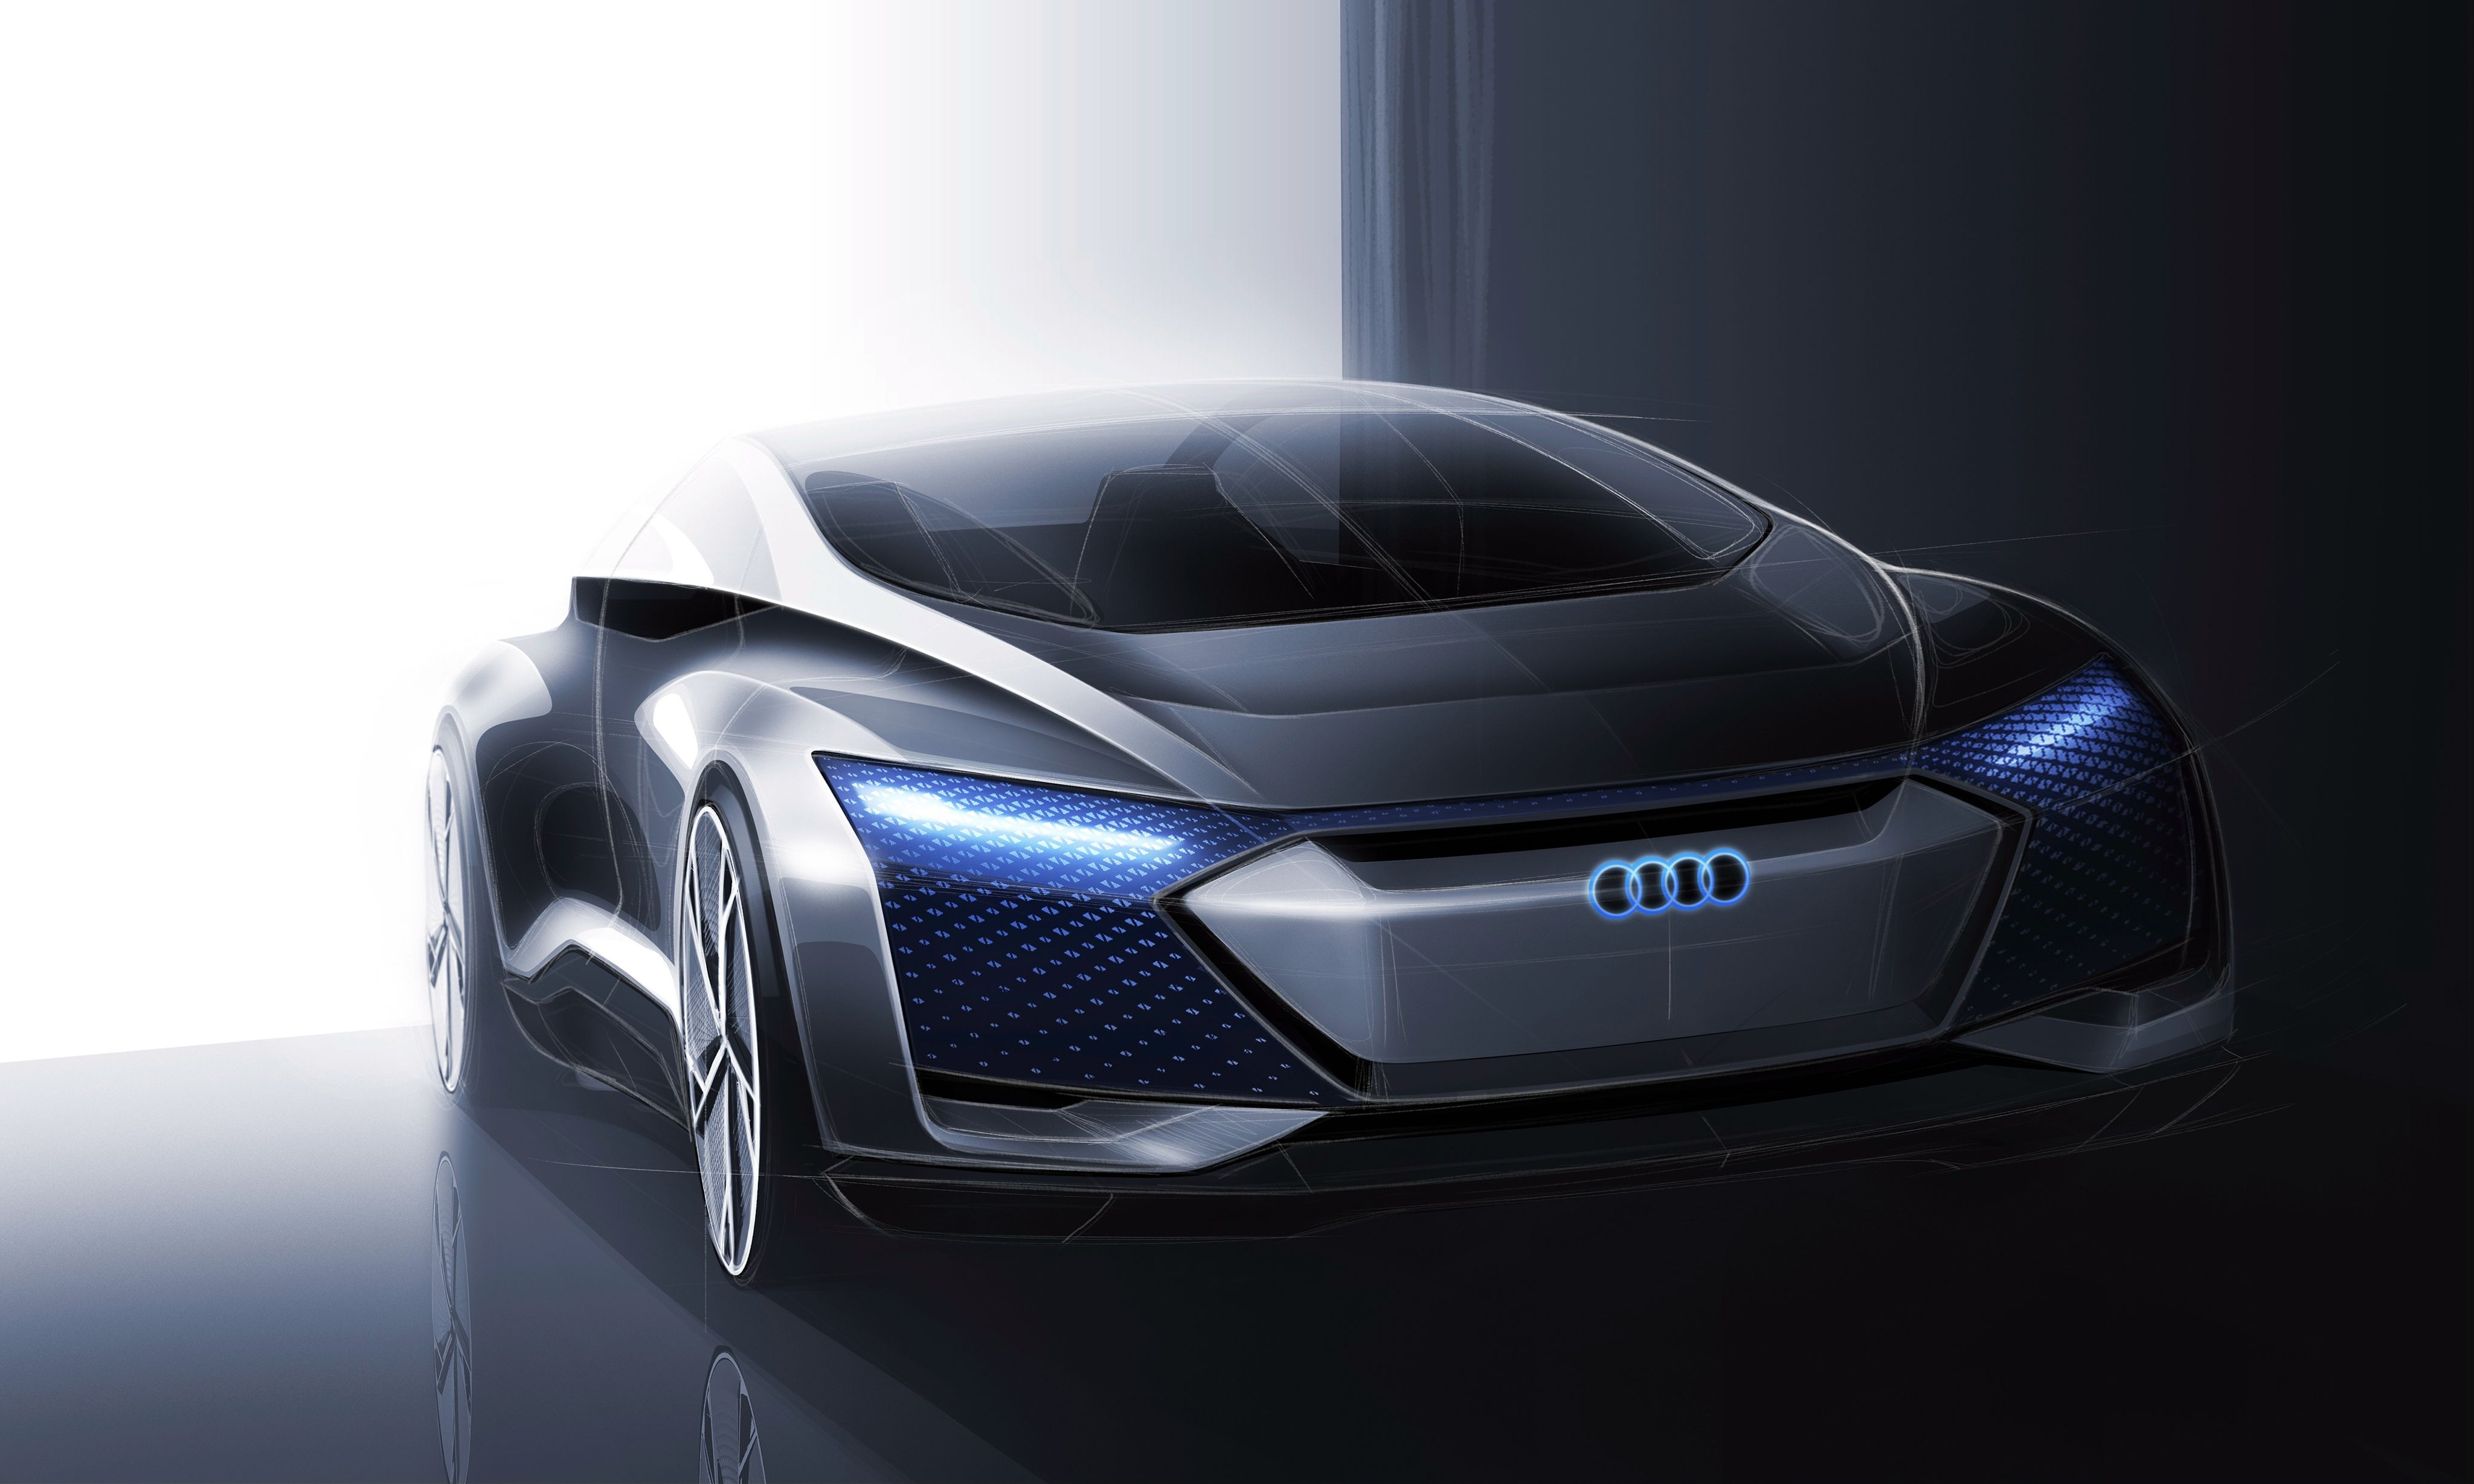 VW Group has announced a flagship electric saloon it has been working on: the Audi A9 E-tron. The design study comes based on the Aicon Concept shown in the gallery here and should be complete by 2024.